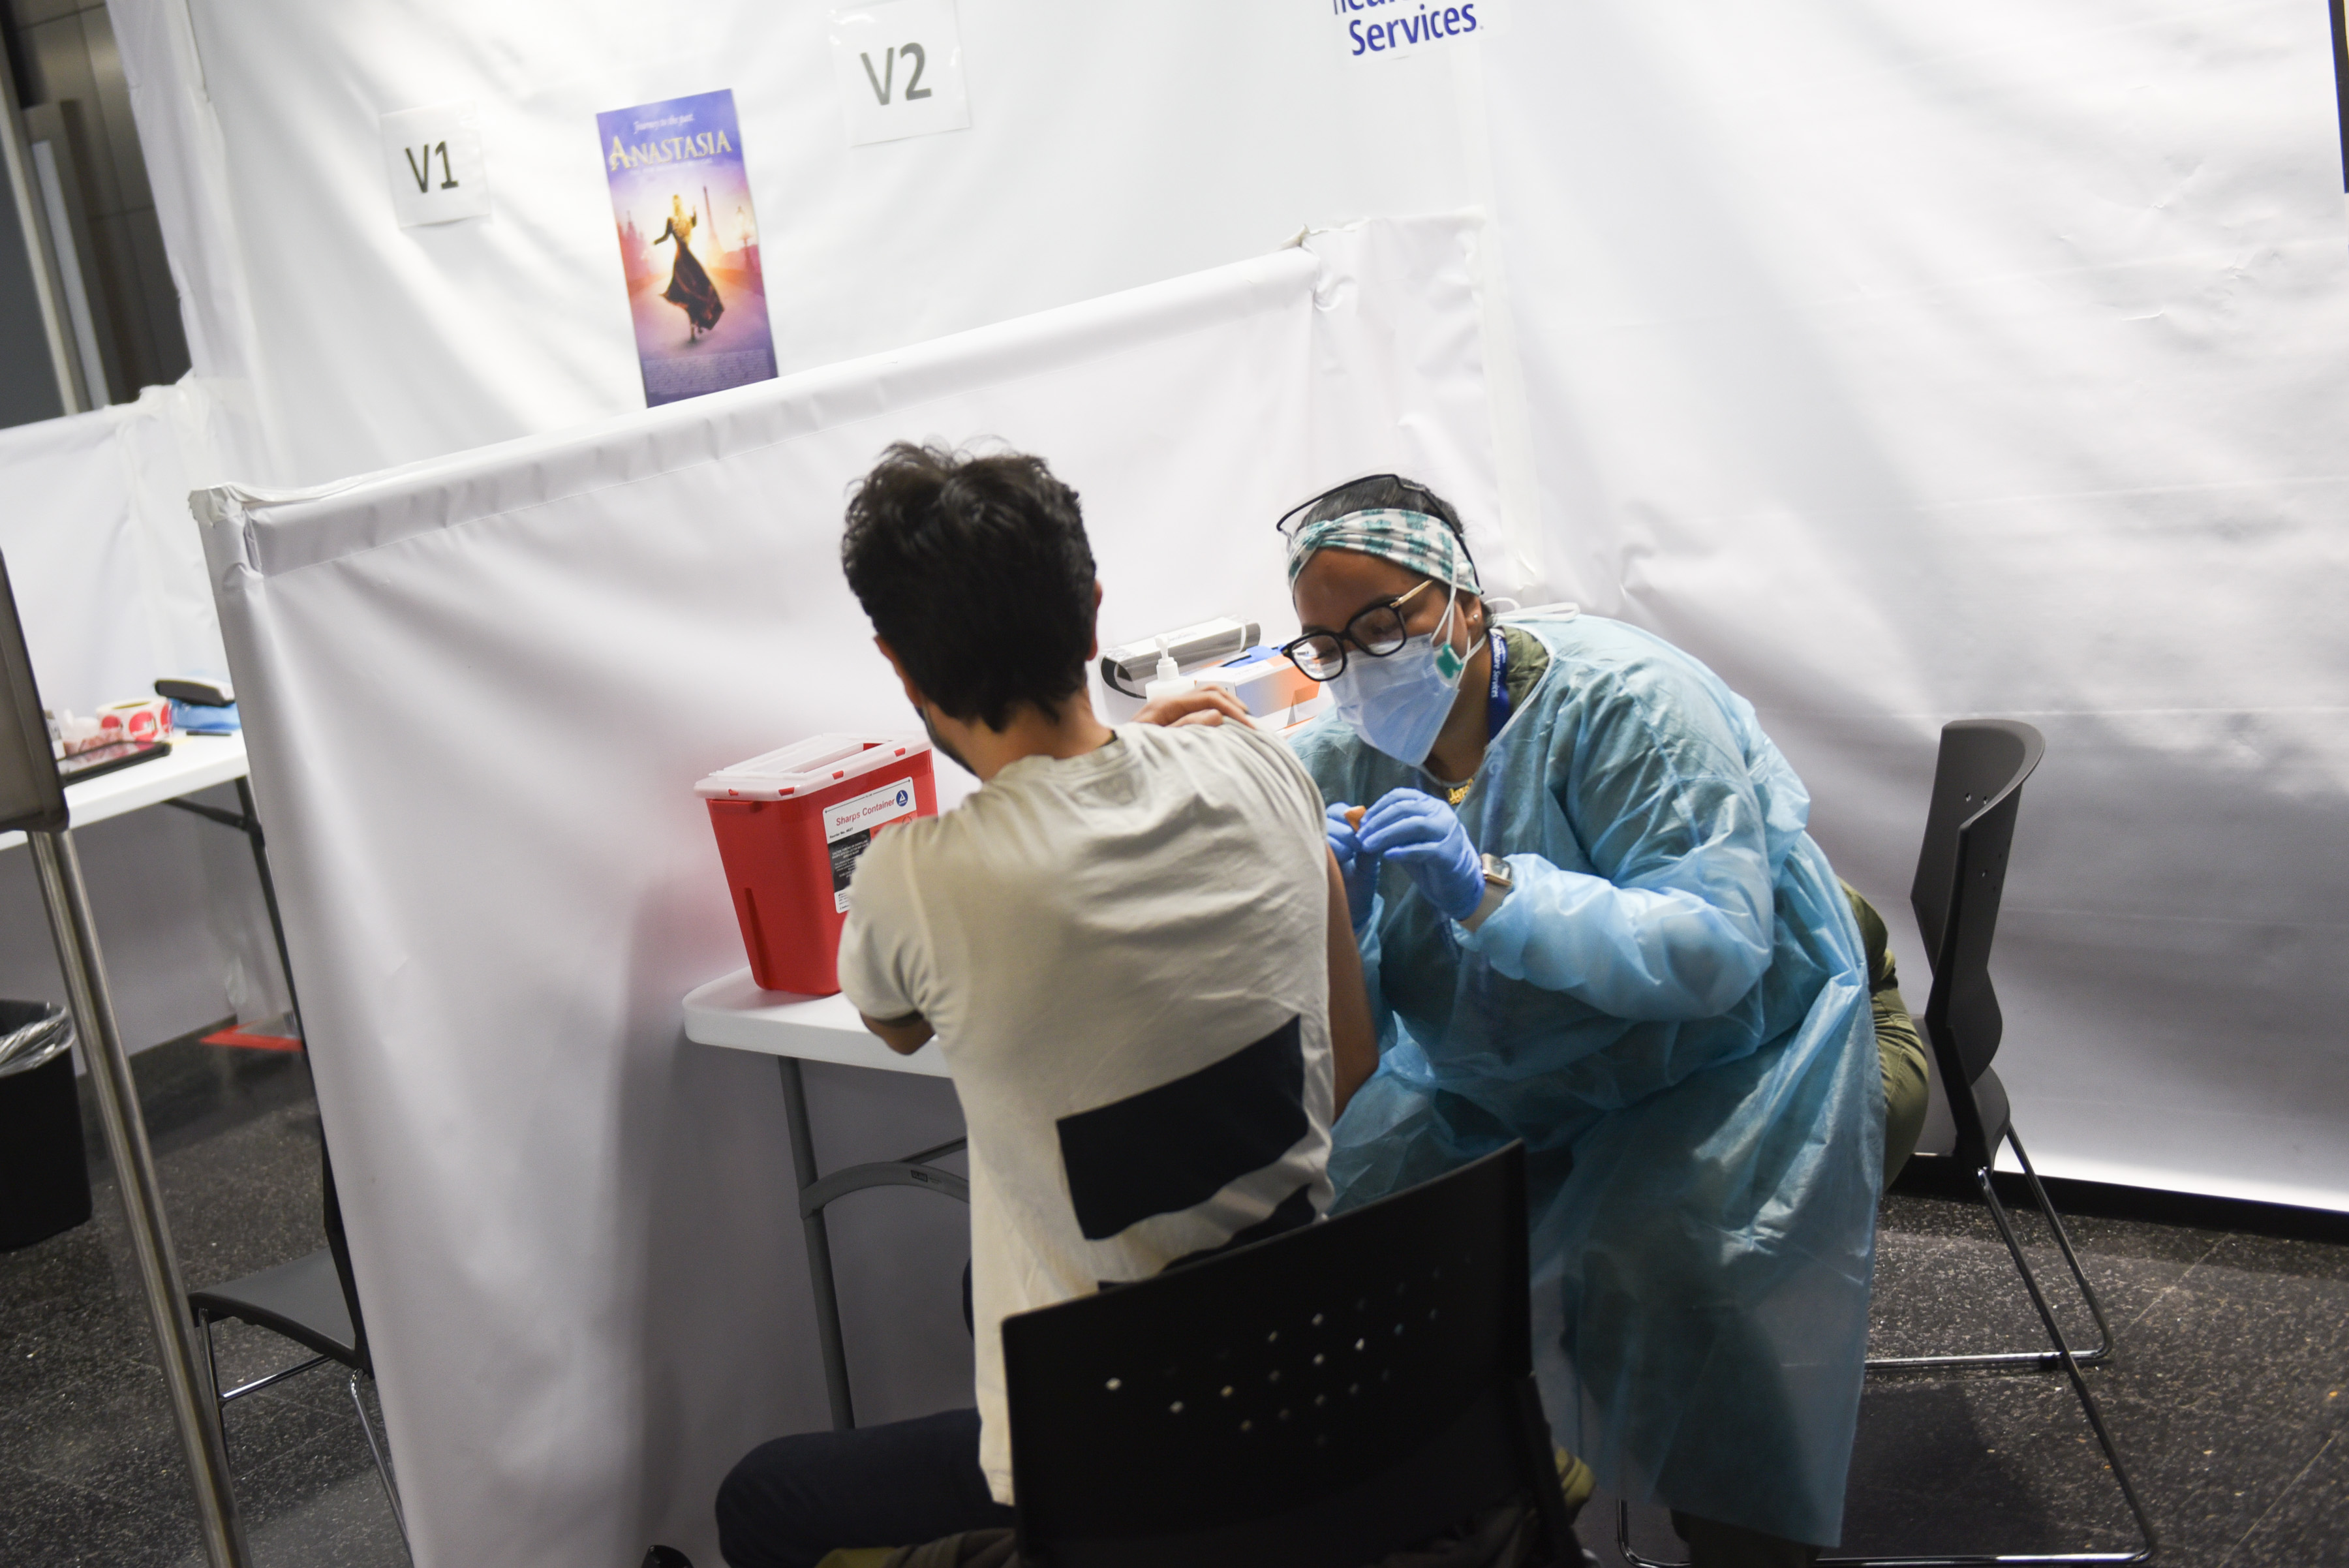 A health care professional in full protective clothing gives a dose of a COVID vaccine to a patient.